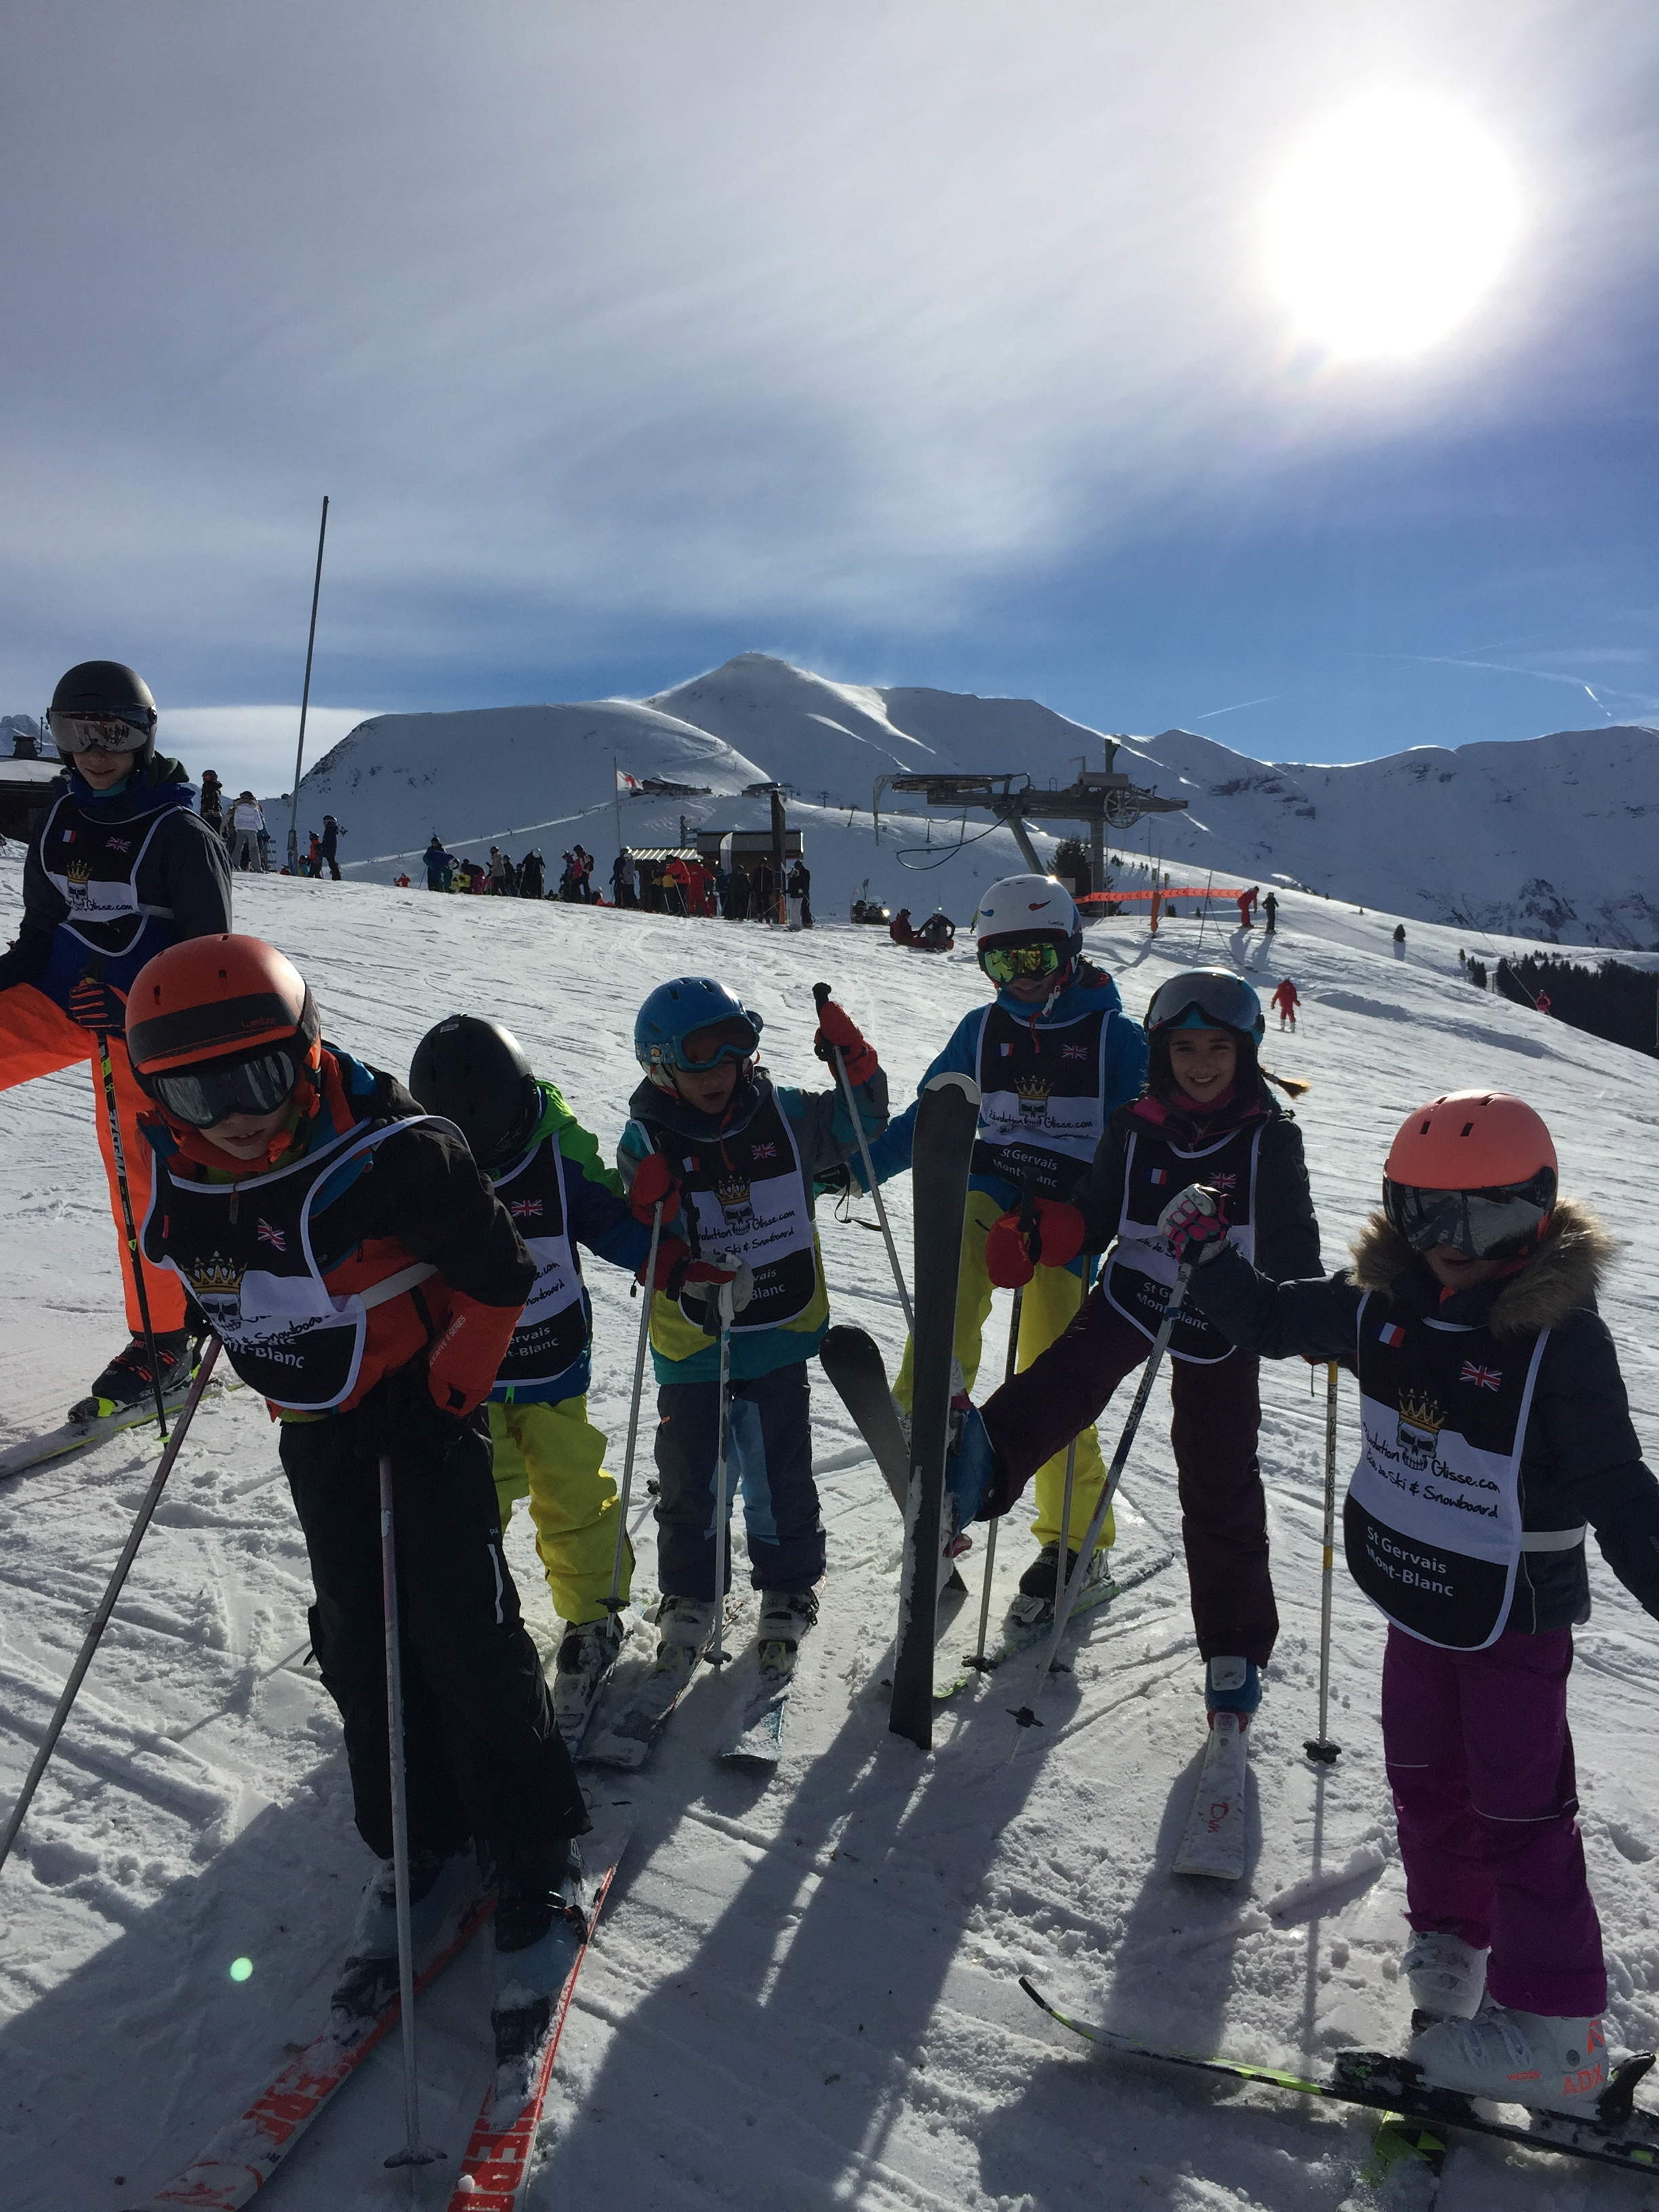 Collectifs Ski  6,12 ans / Ski Group 6 to 12 years old (9h -11h)